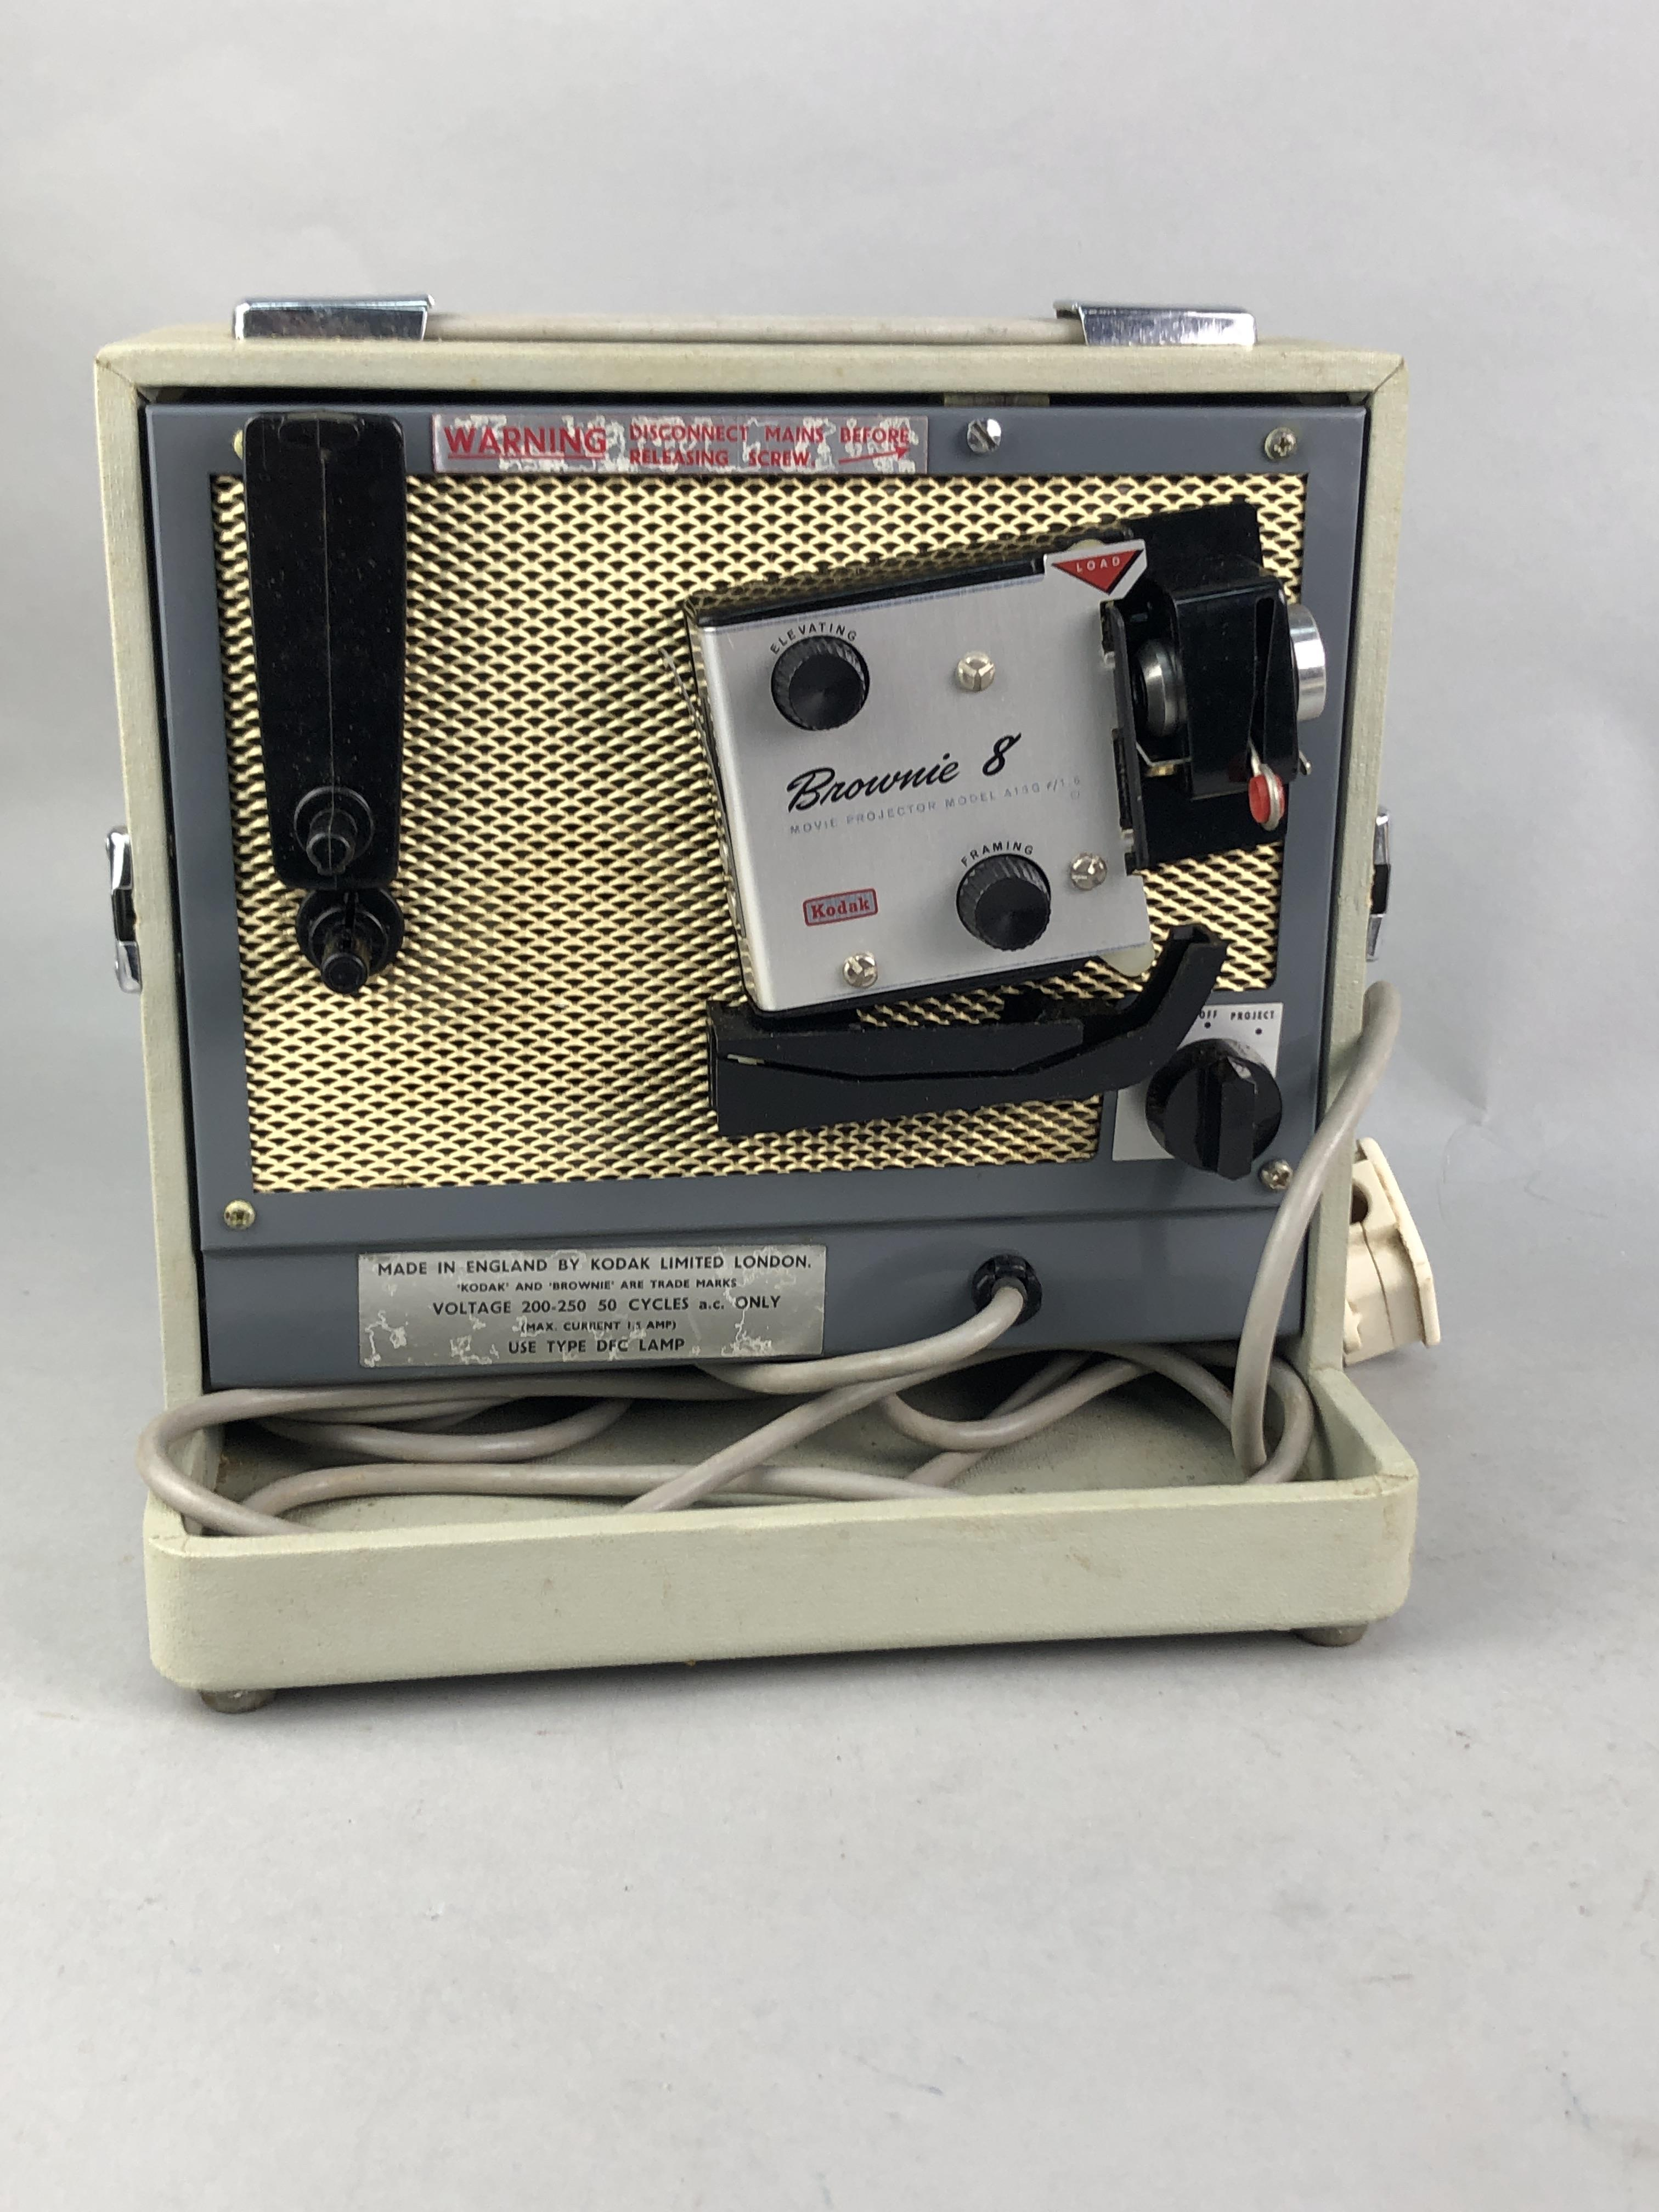 Lot 224 - A PHOTOGRAPHIC ENLARGER AND CAMERA EQUIPMENT